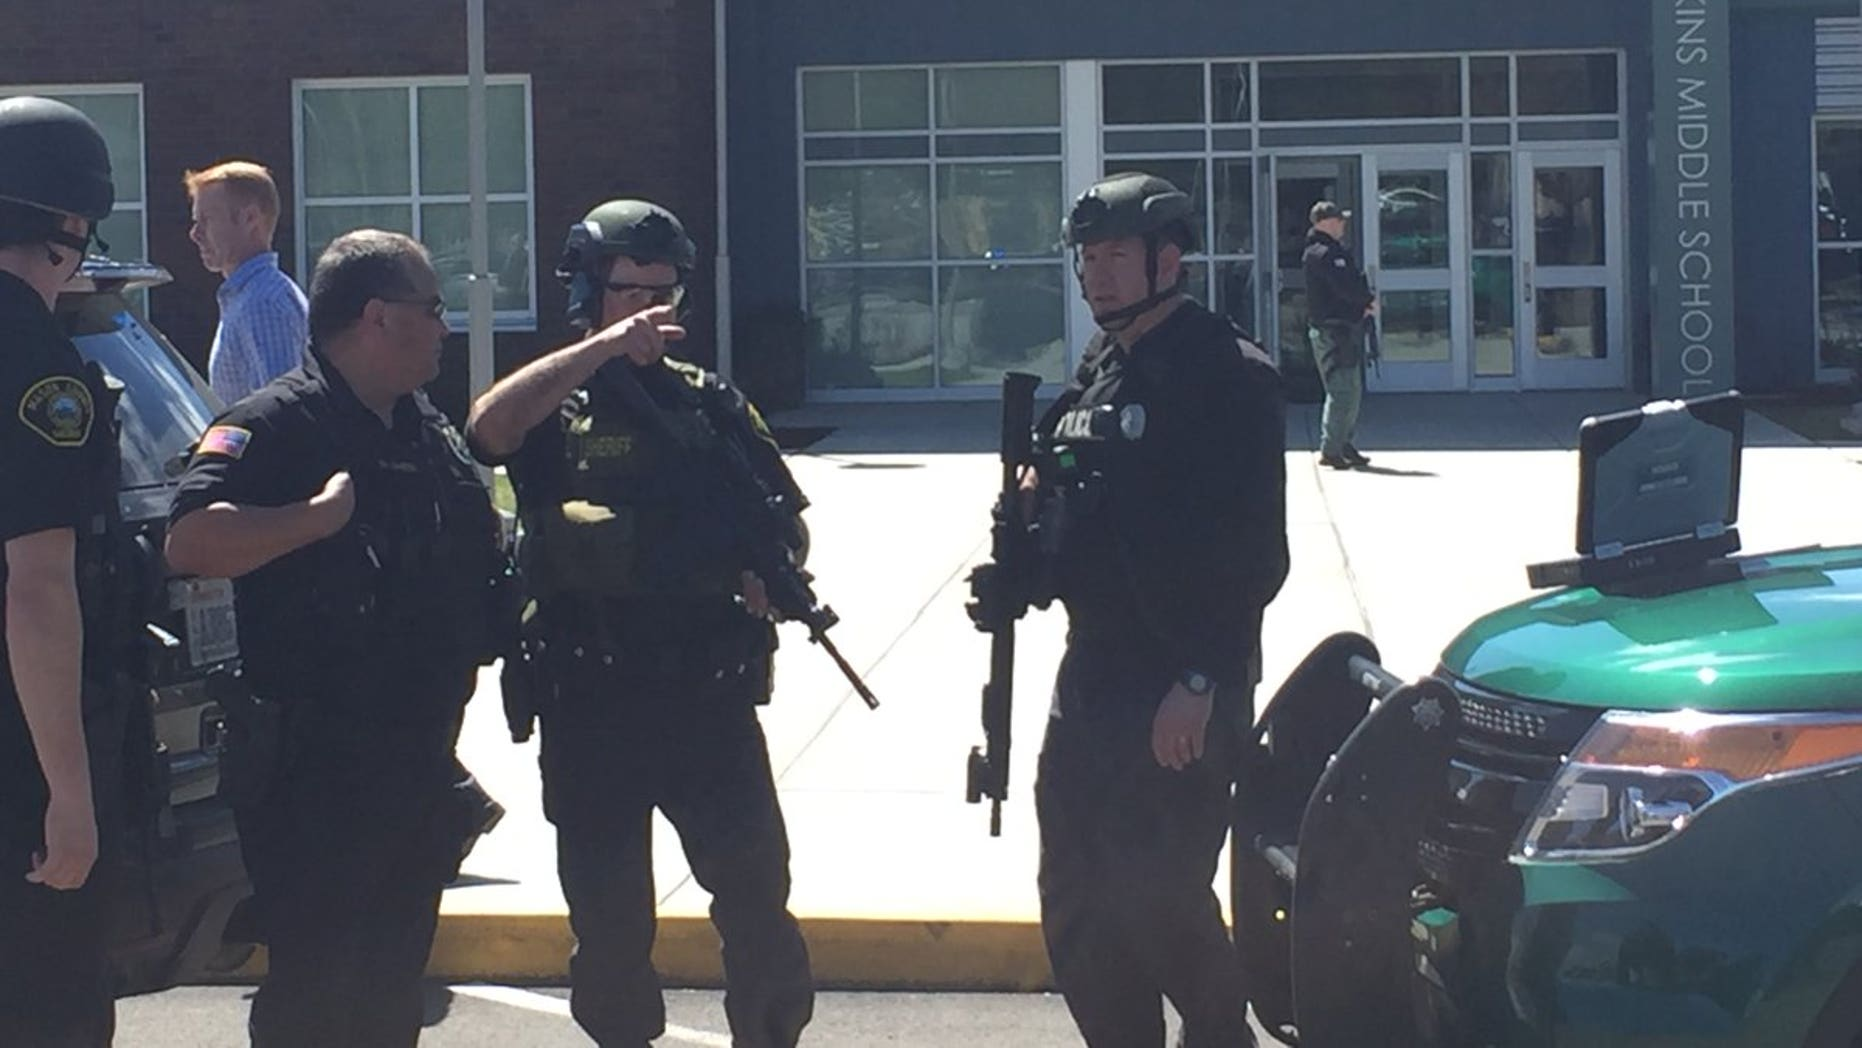 Reports of an active shooter were false, according to investigators.